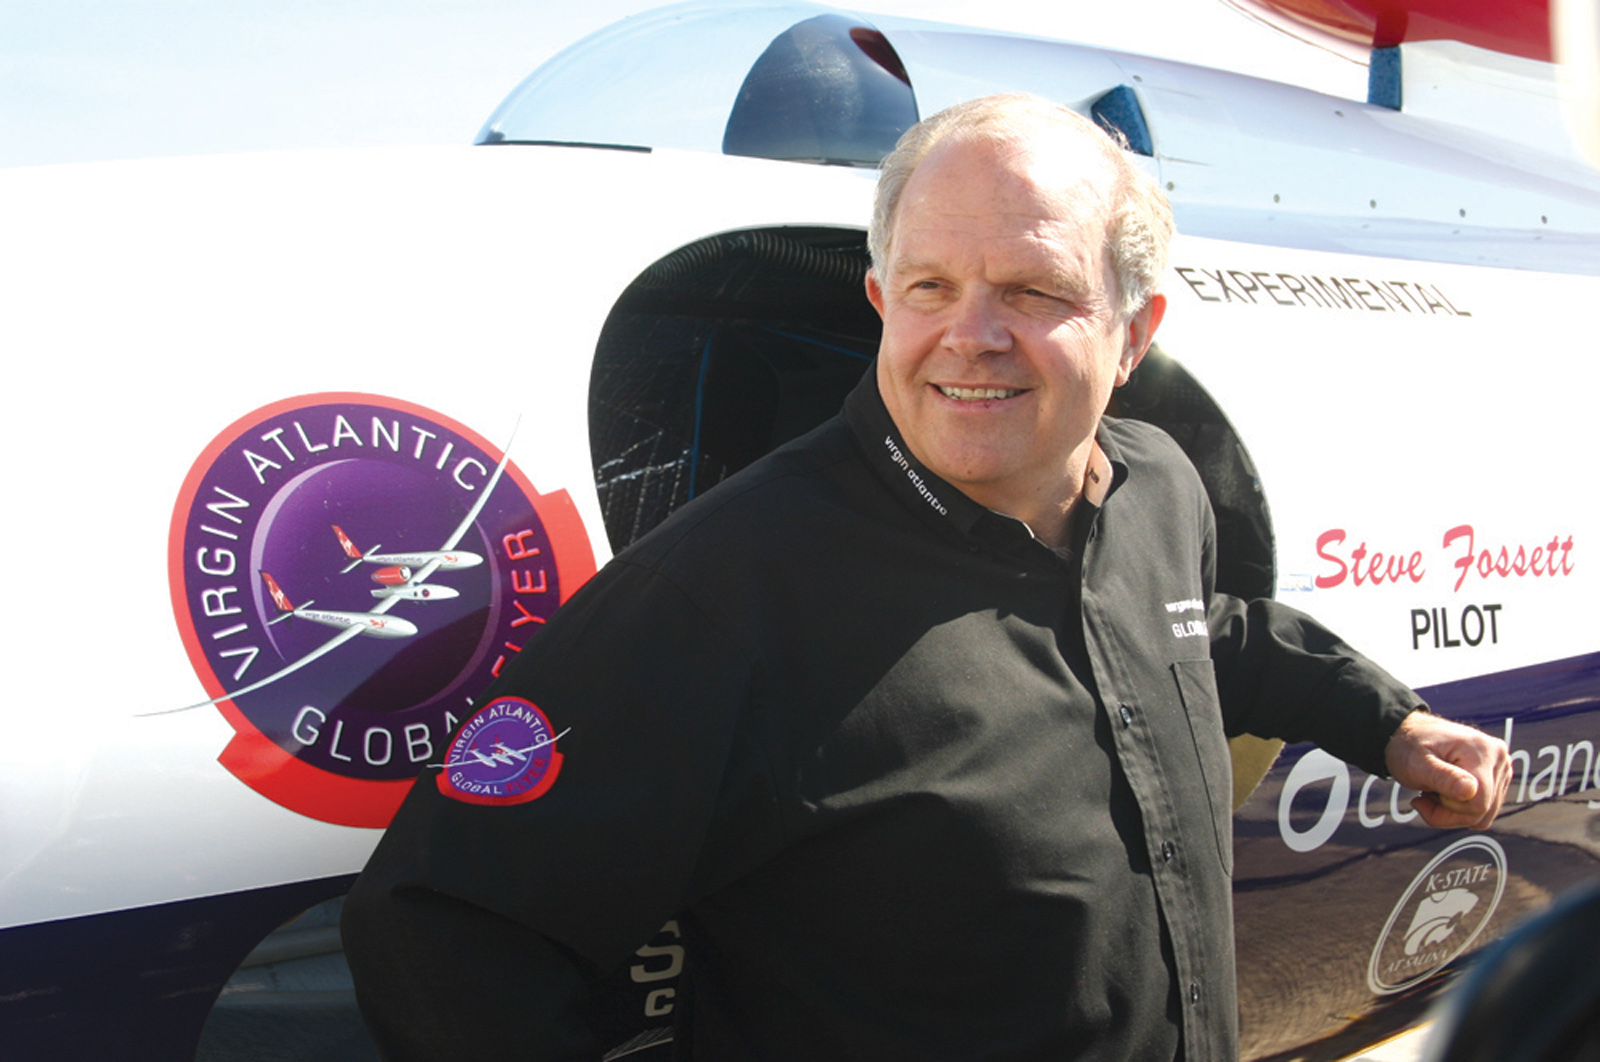 Steve Fossett and Virgin Atlantic GlobalFlyer Set New Solo World Record